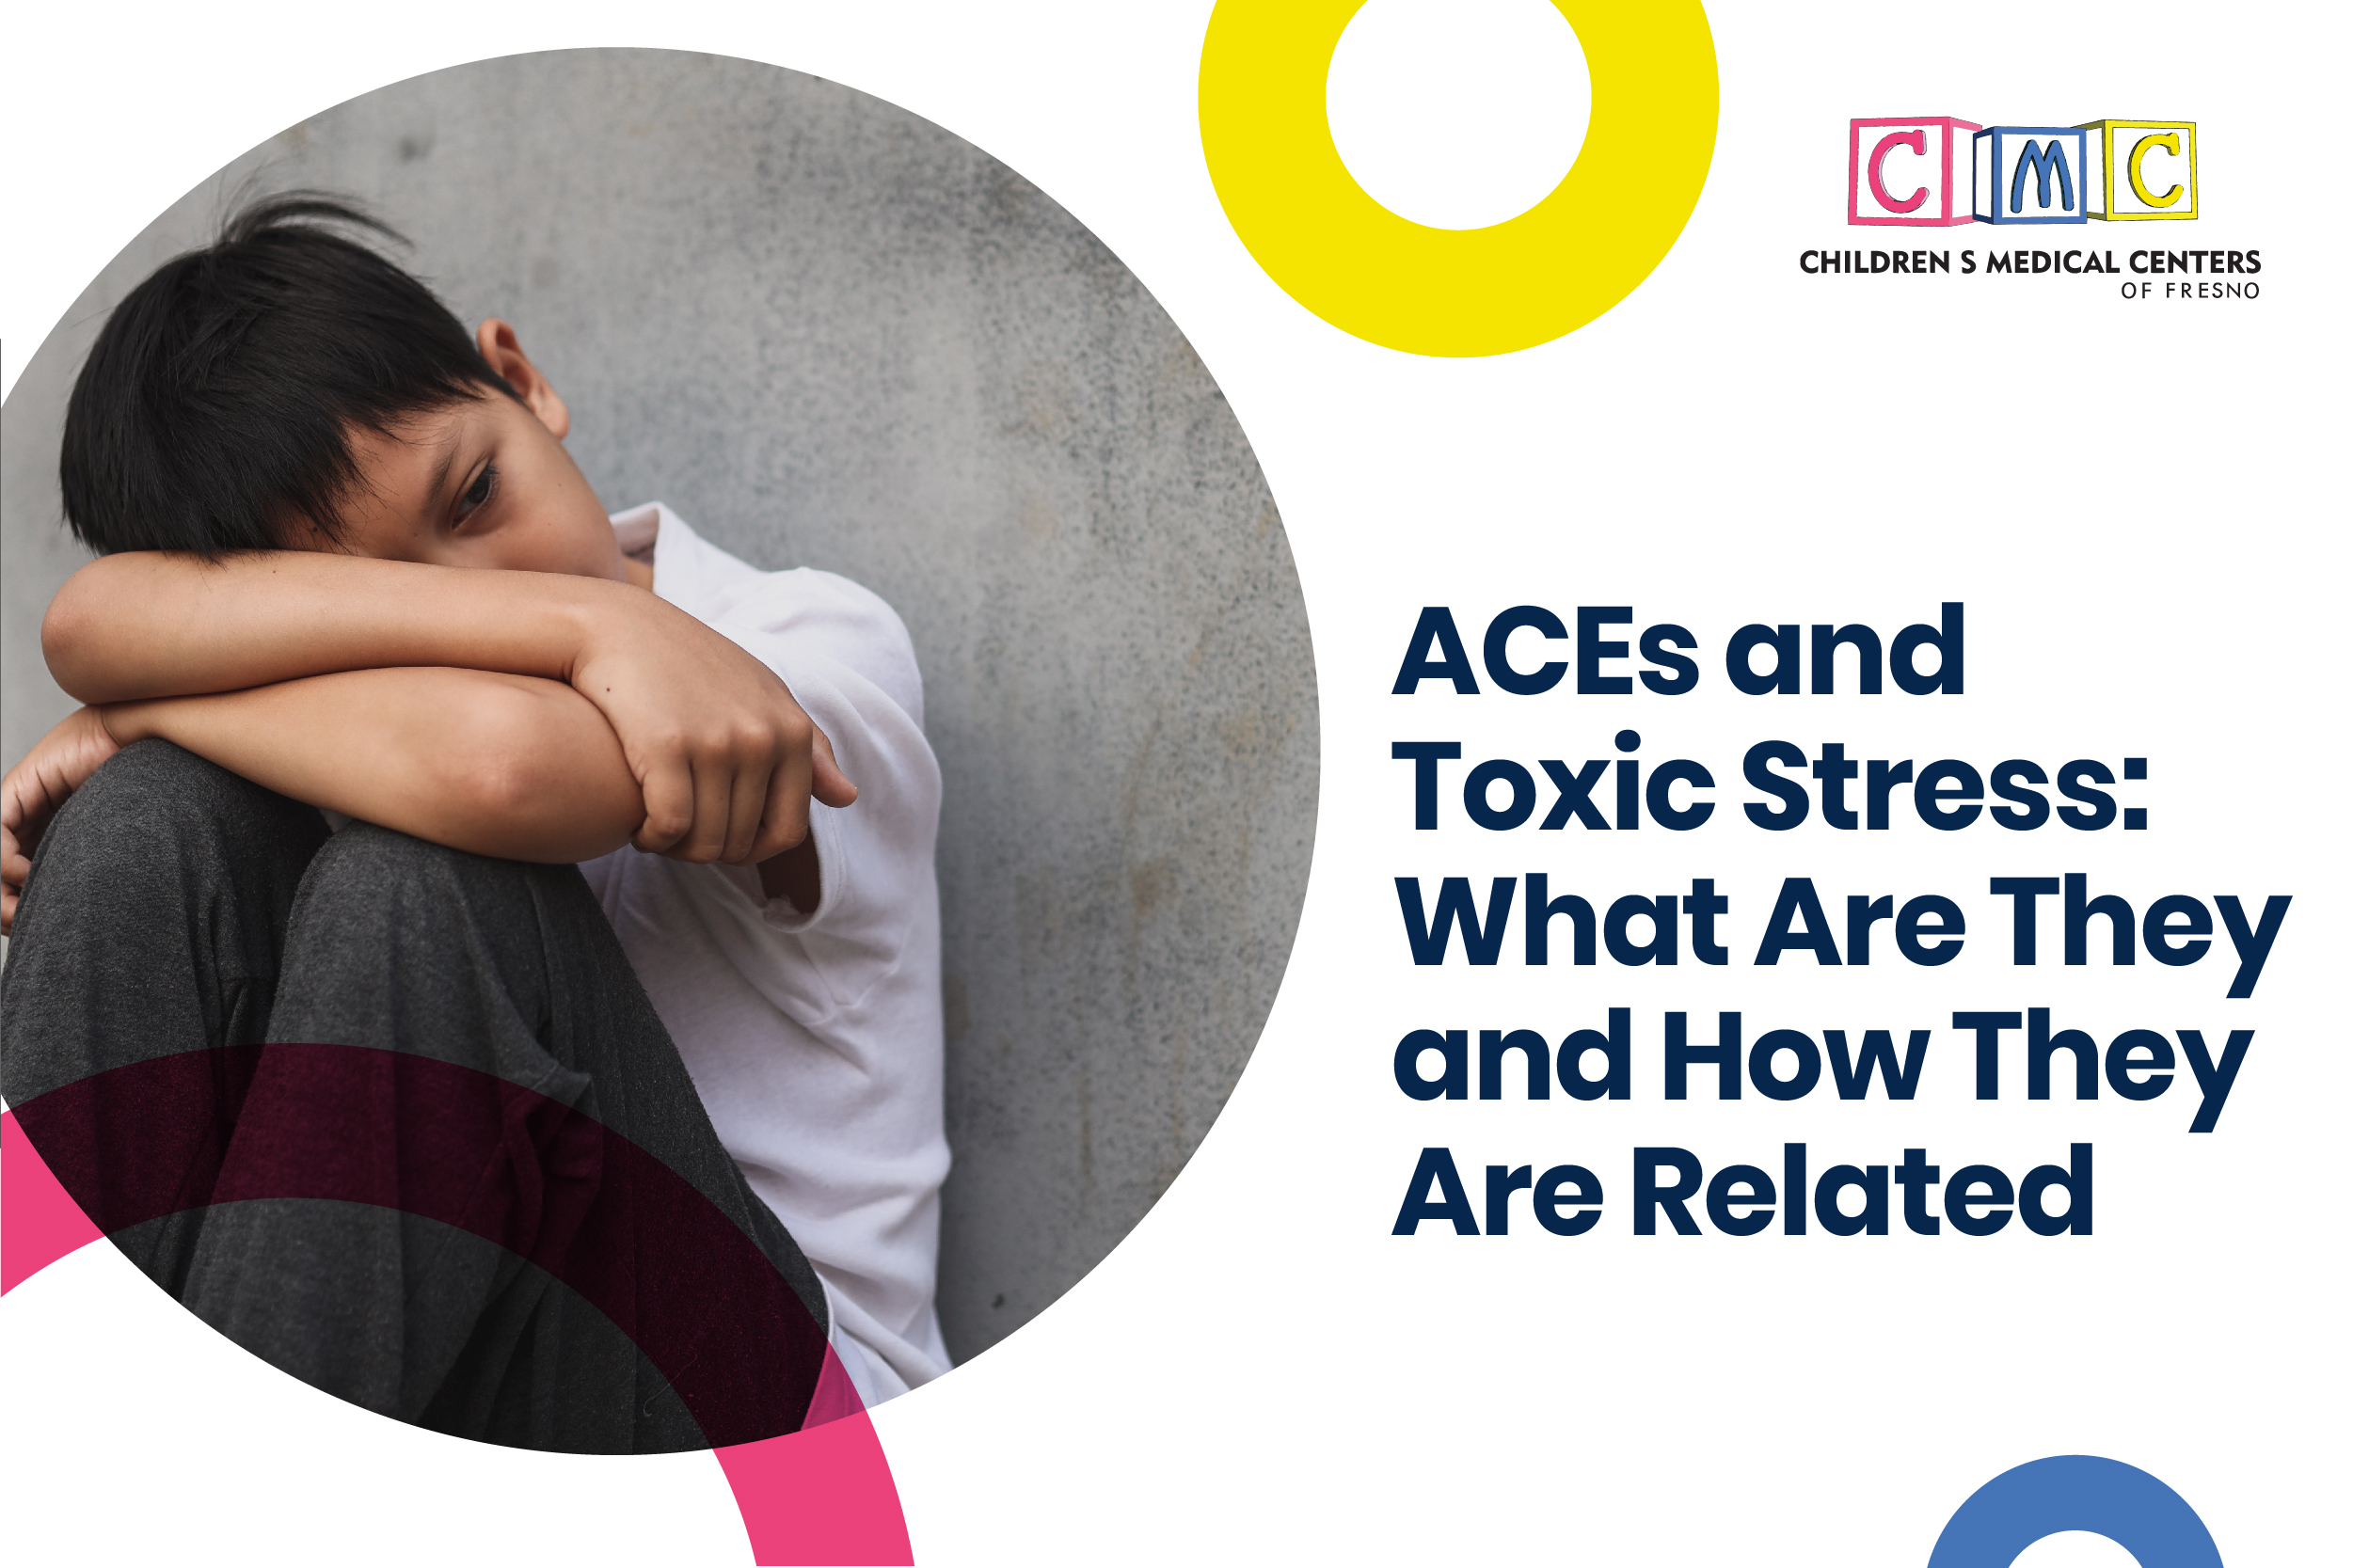 Aces and Toxic Stress